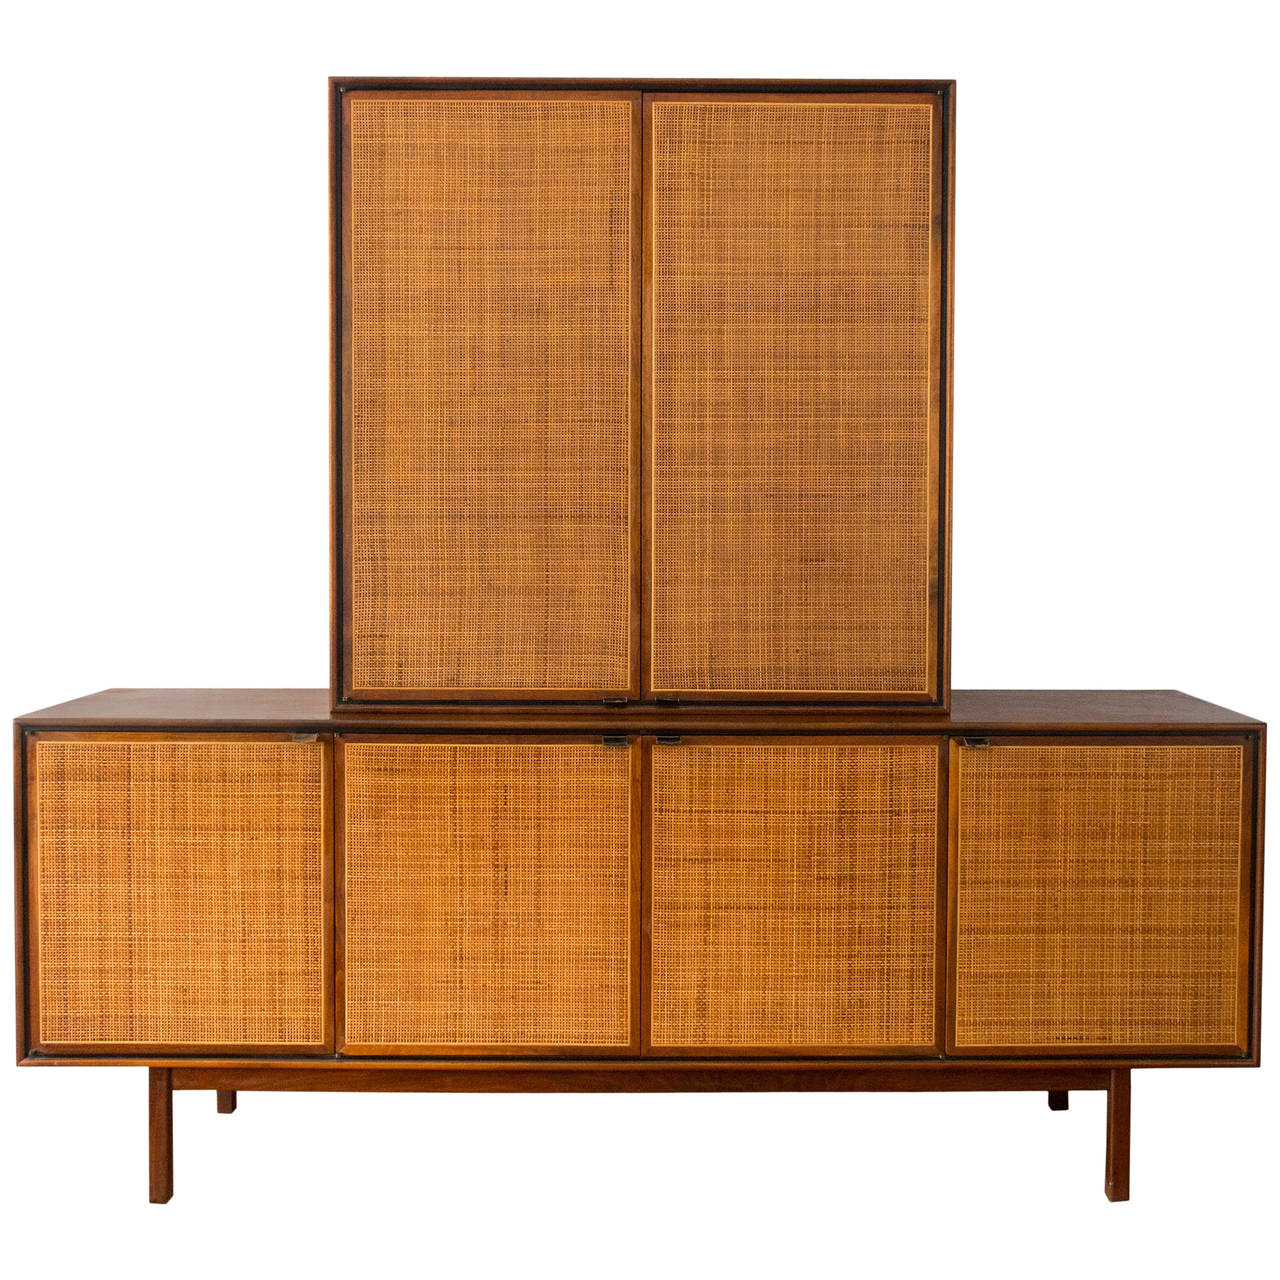 High Quality Florence Knoll Attributed Founders Walnut Cane Credenza Cabinet 1